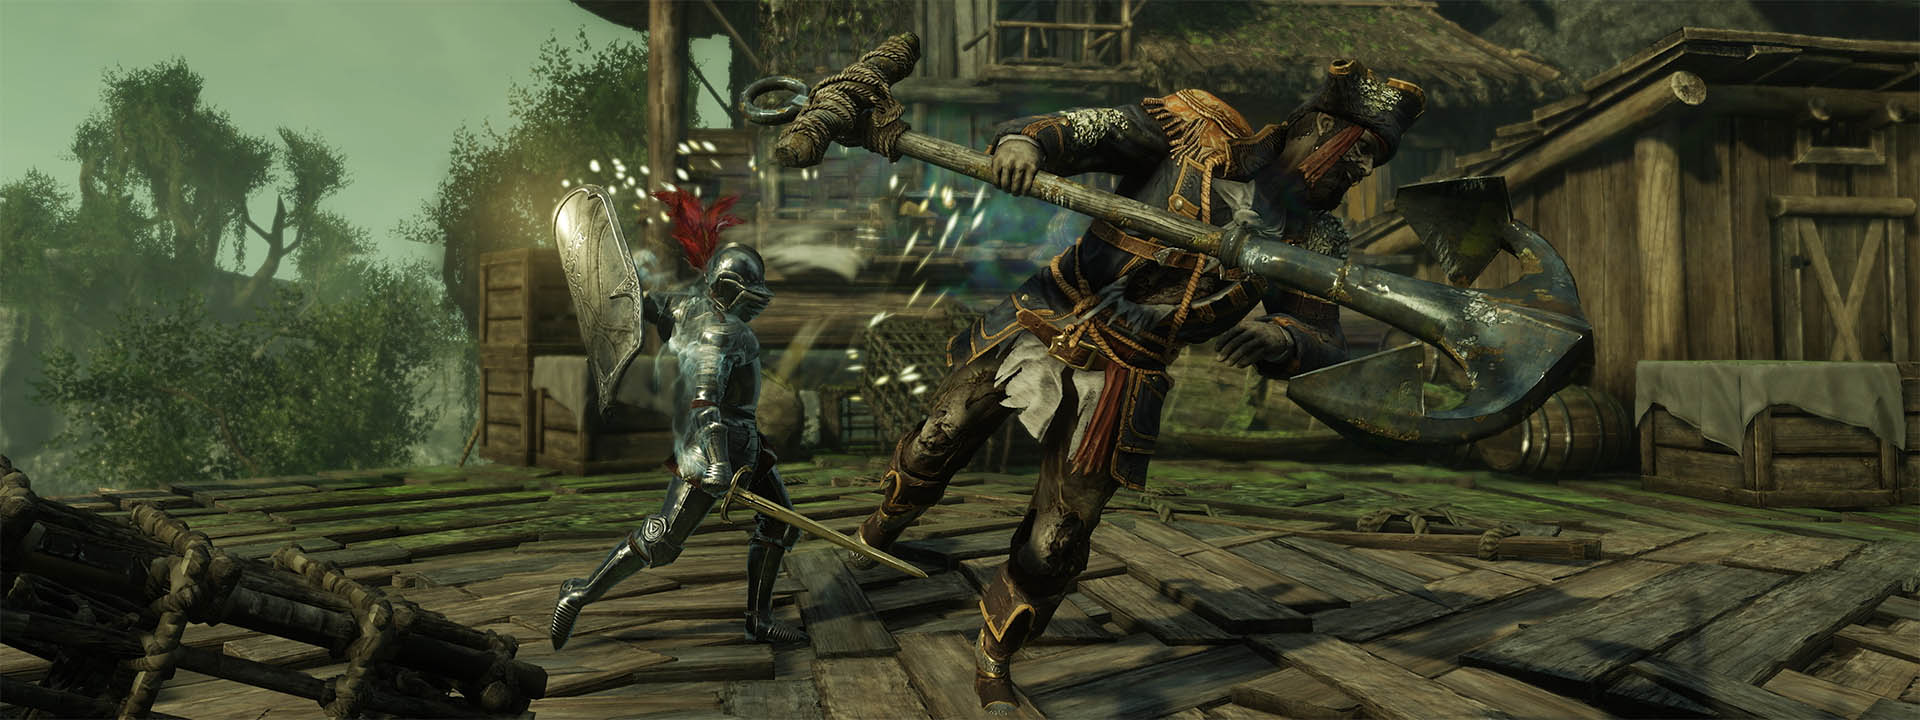 A screenshot showing a player character wielding the new tower shield in combat.